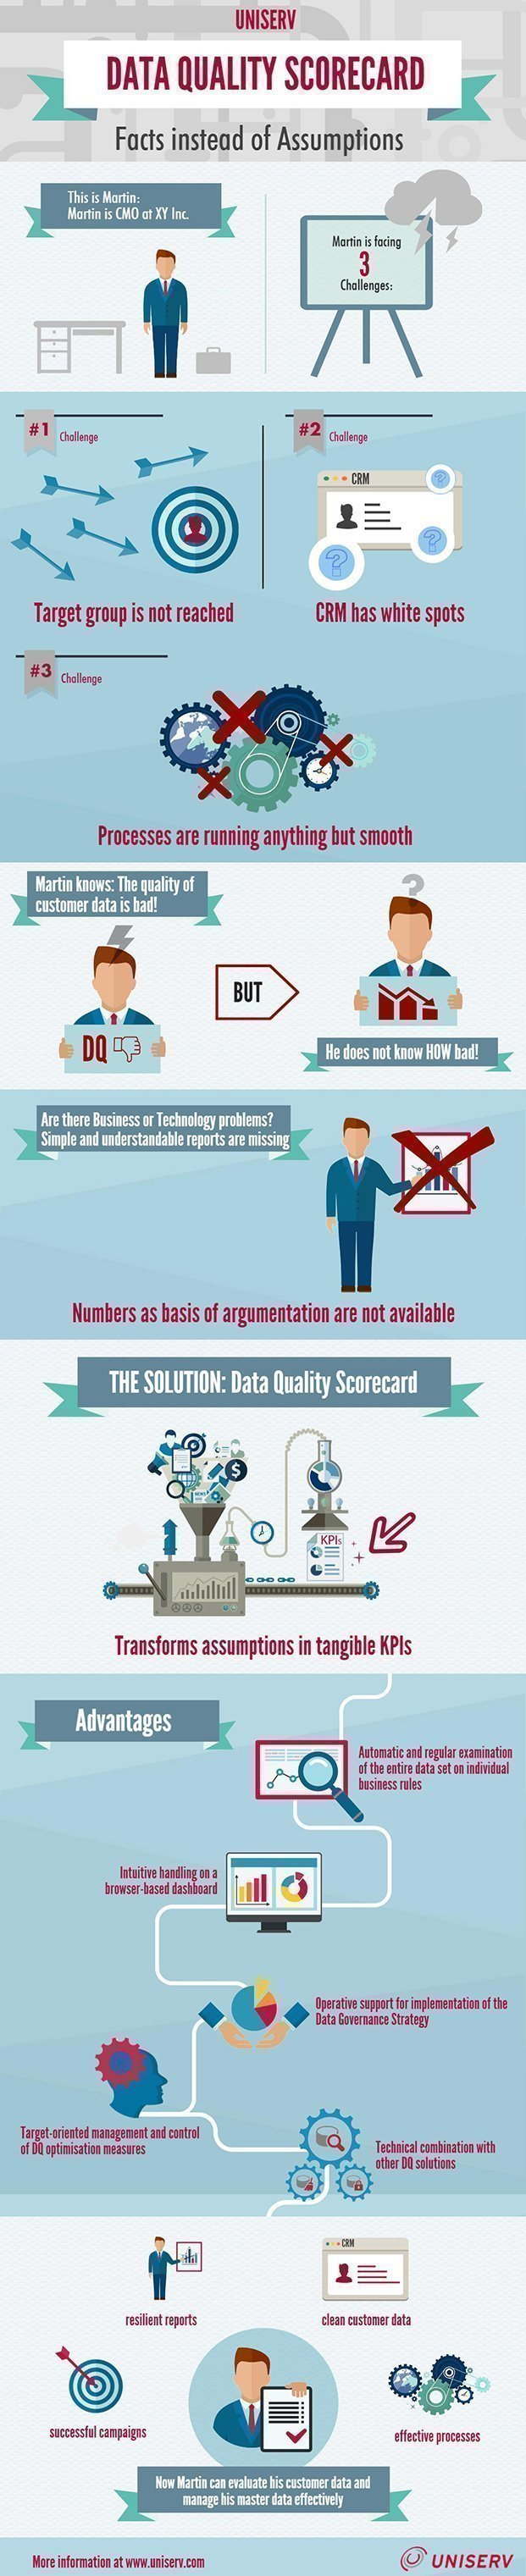 Data Quality Scorecard Infographic